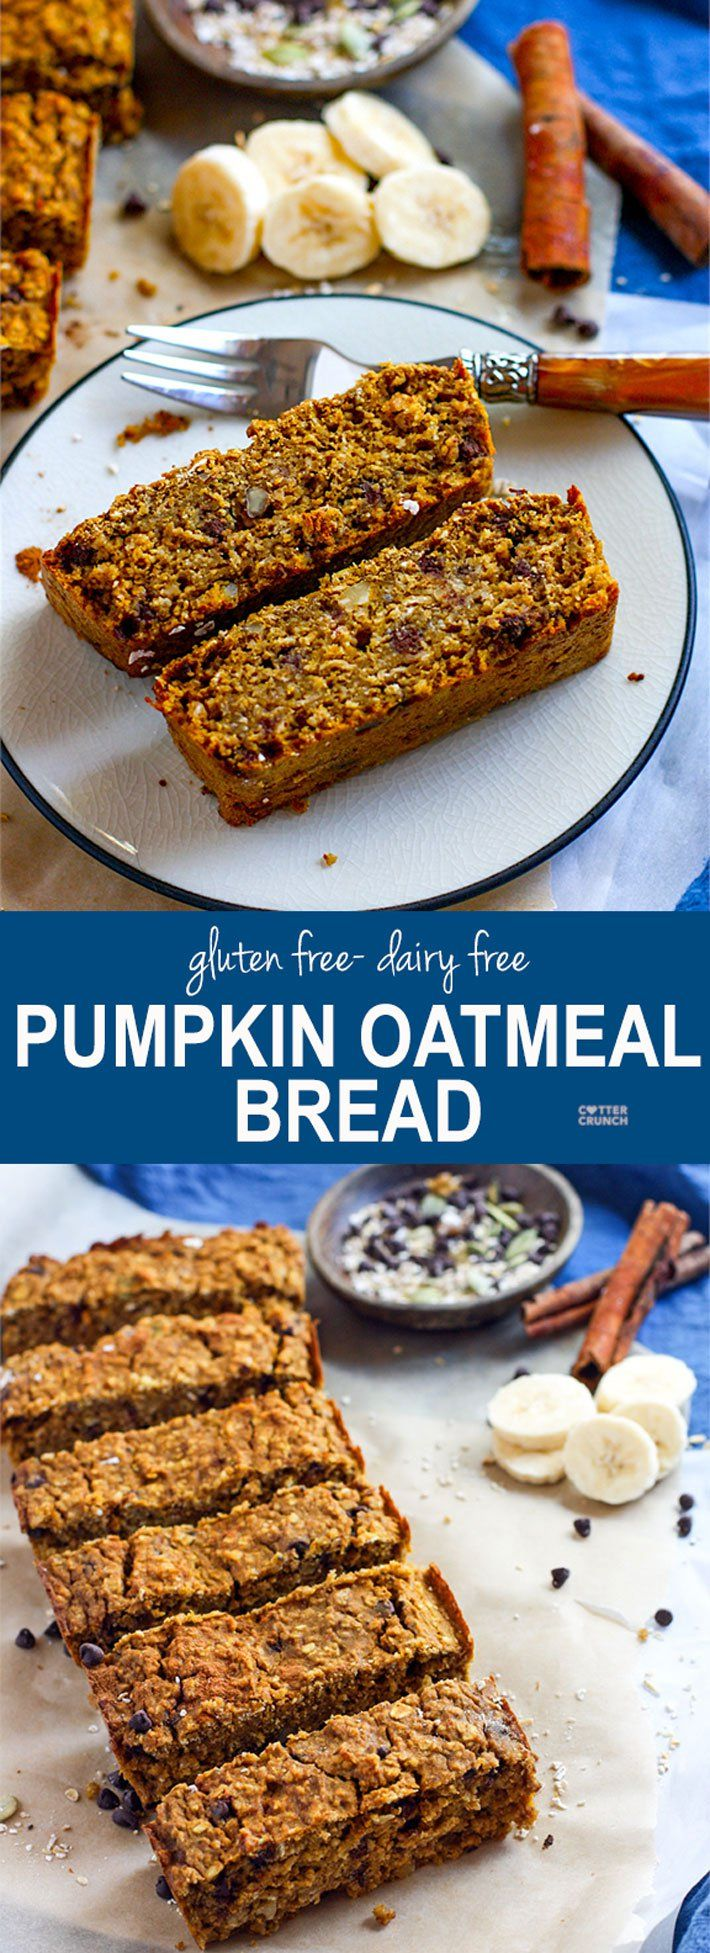 Pumpkin is so heavenly to bake with! This Gluten Free Pumpkin Oatmeal Bread is great for holiday gifts, breakfast, and more! plus you can add in any fixins! Cranberry, chocolate chips, you name it! Ready in 30 minutes and with simple ingredients and dairy free option. www.cottercrunch.com